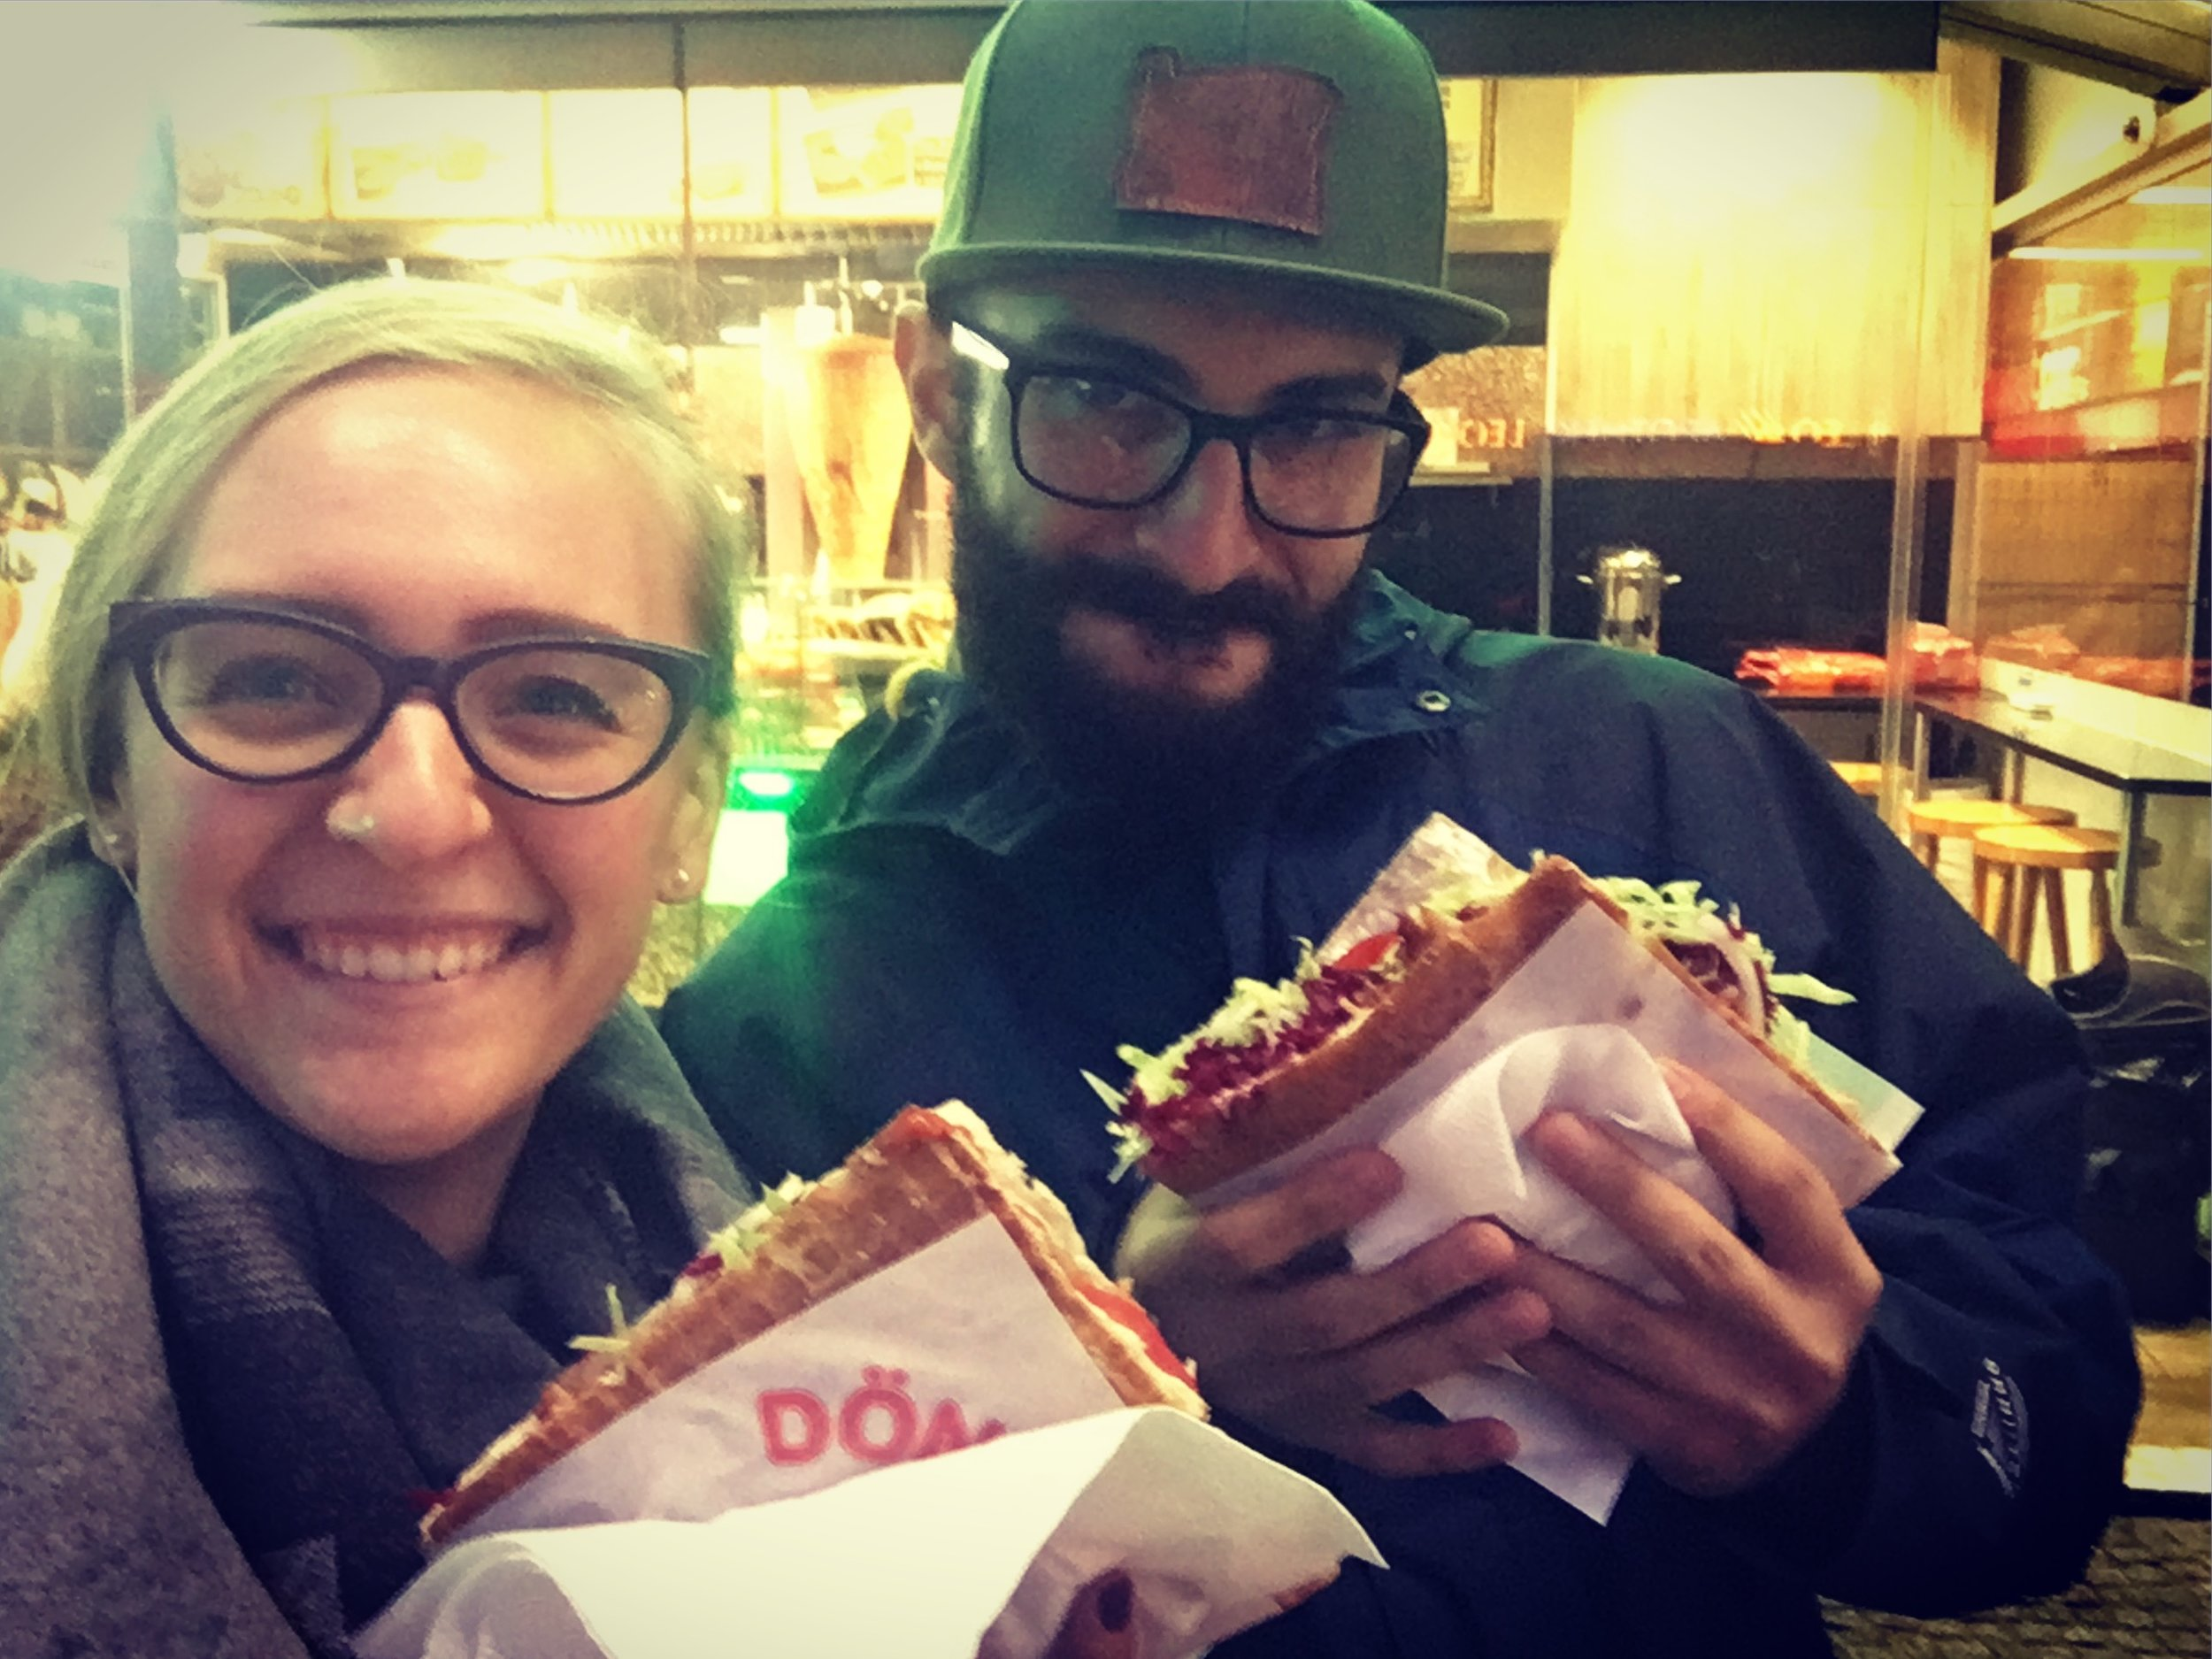 About to dig into our Döner! Just know going it that it won't be pretty to eat, but quite possibly one of the most delicious things you ever put in your mouth.